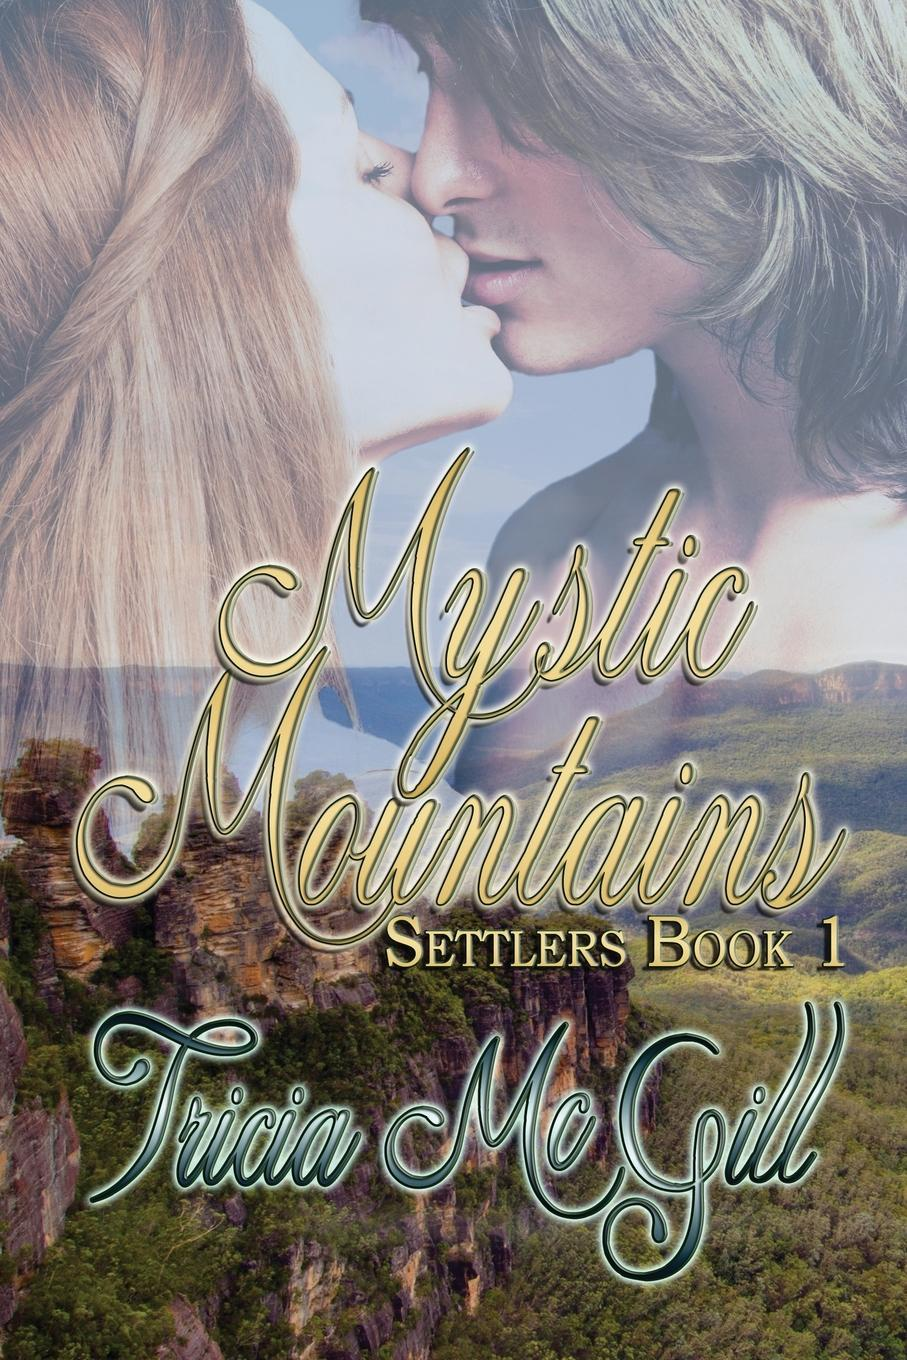 Tricia McGill Mystic Mountains john logan campbell poenamo sketches of the early days in new zealand romance and reality of antipodean life in the infancy of a new colony